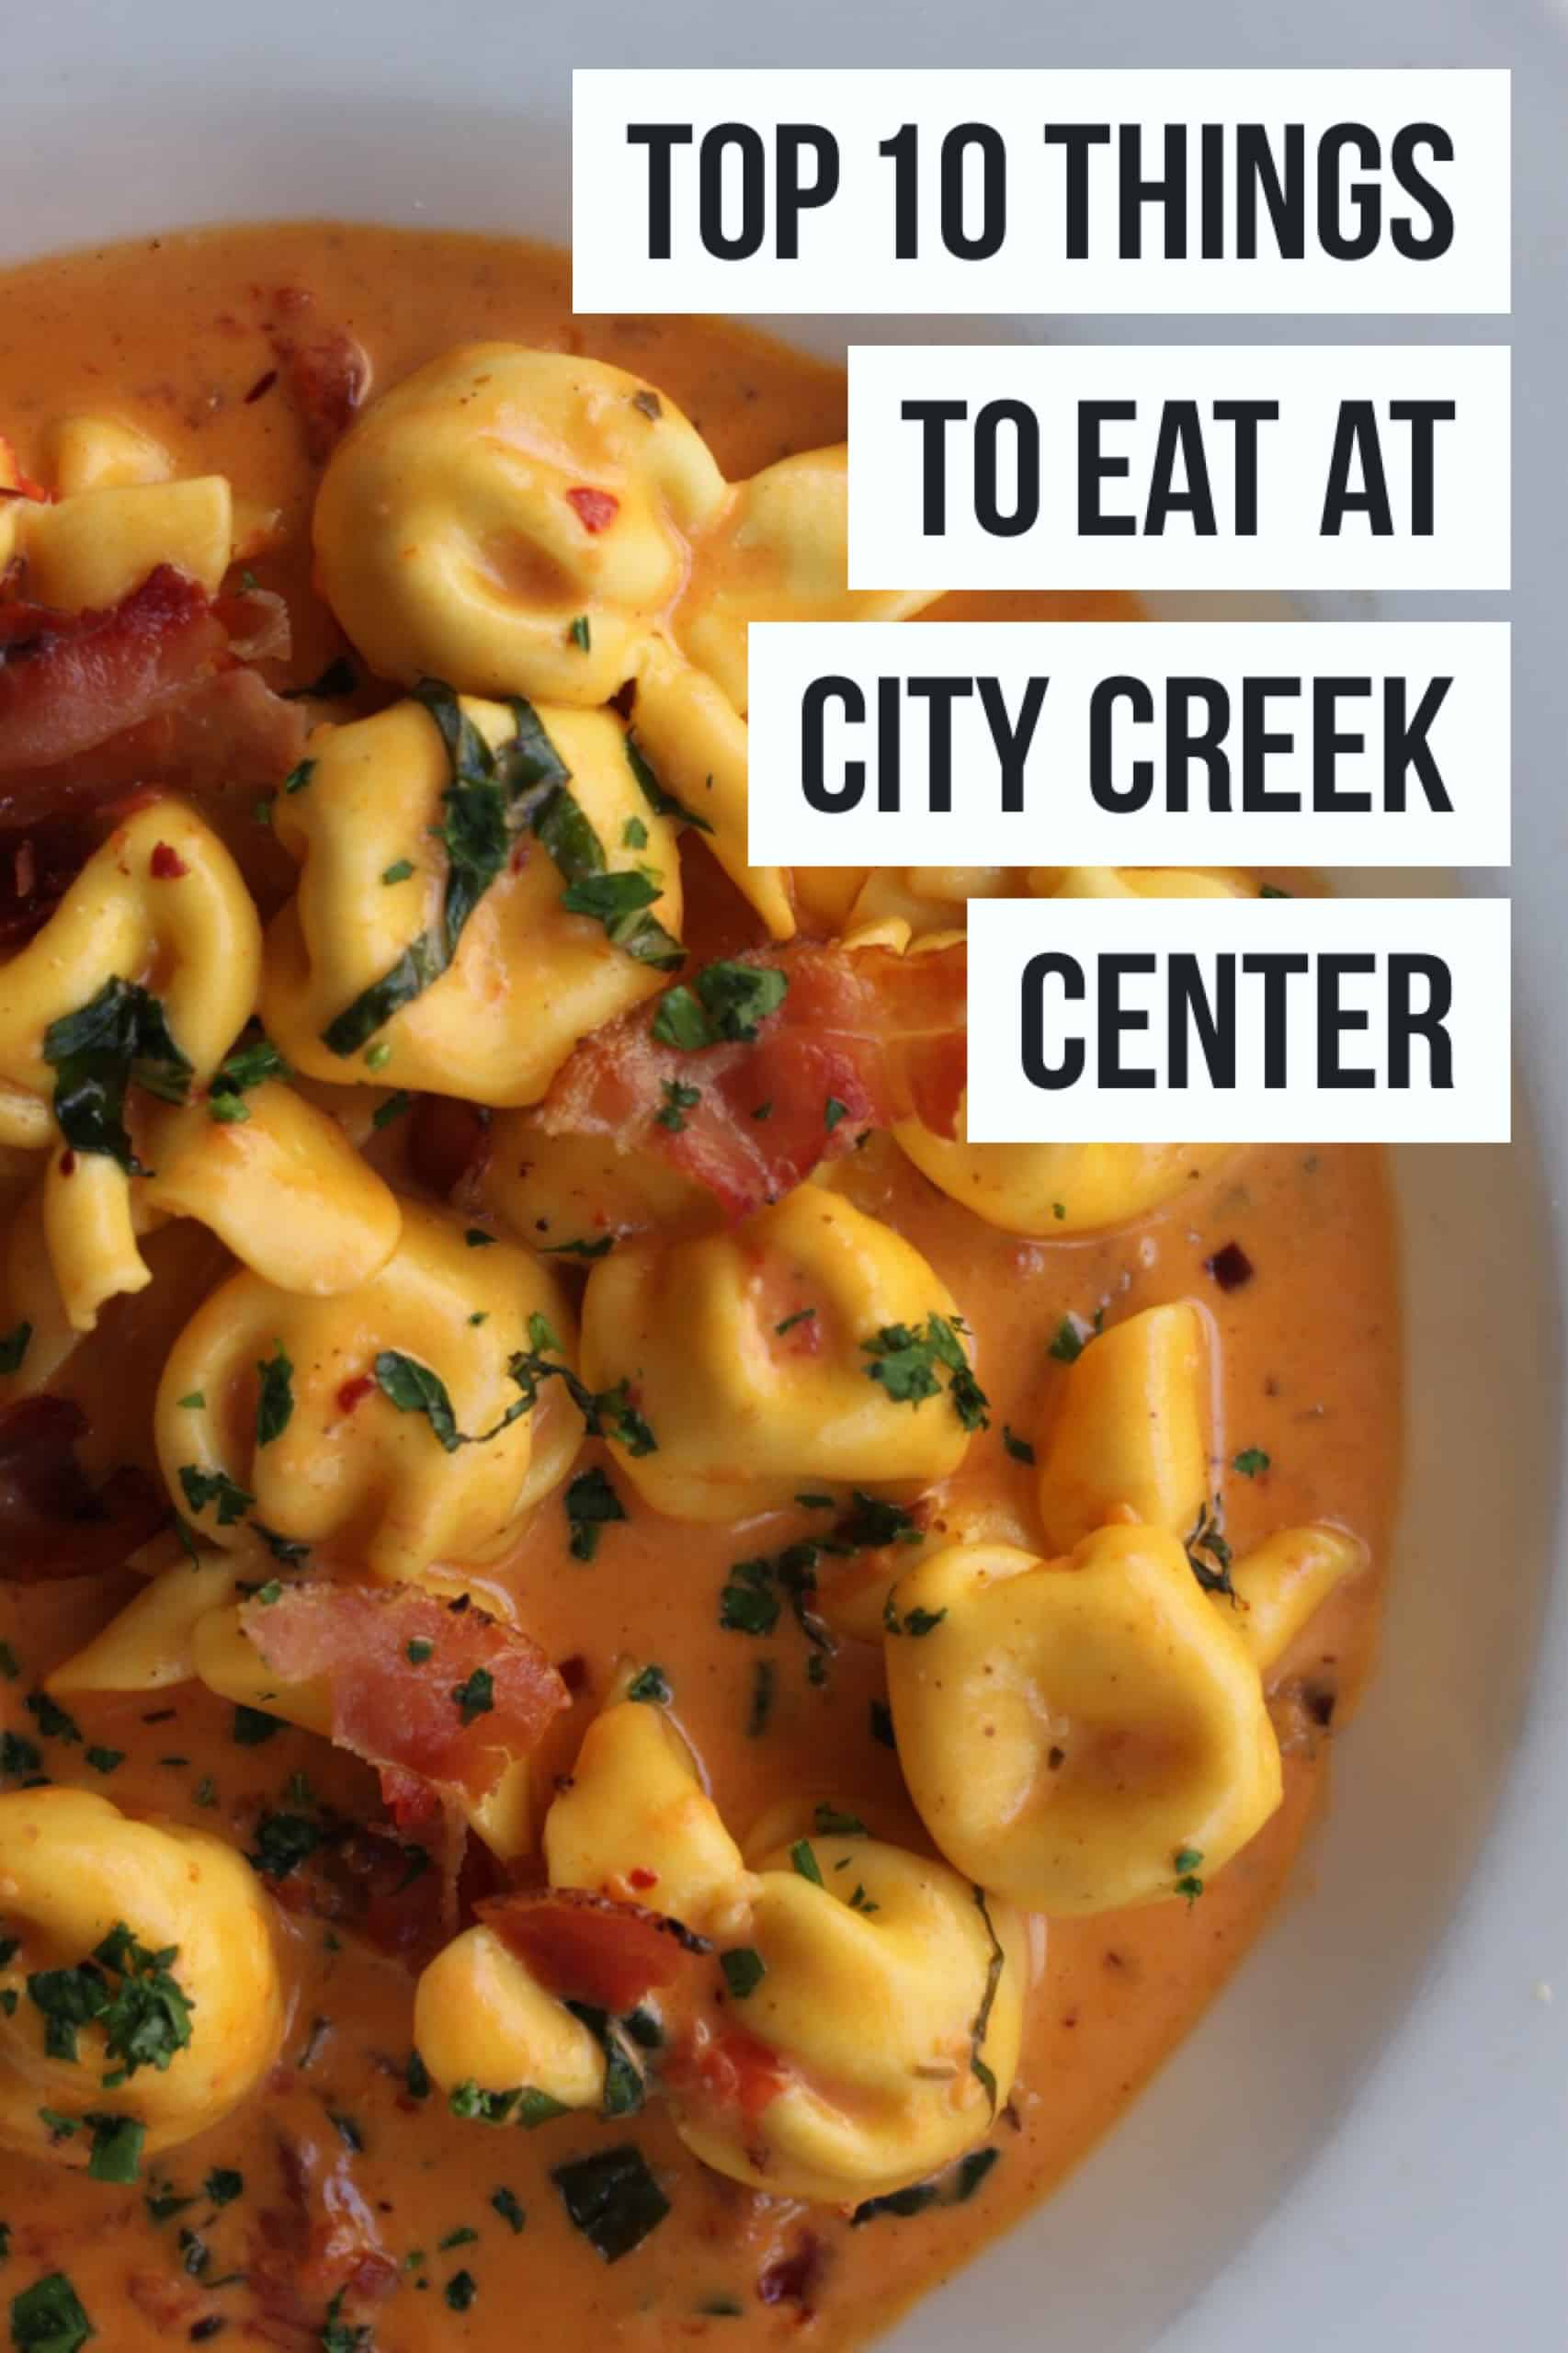 Top 10 Things To Eat At City Creek Center in Salt Lake City, Utah! A MUST READ blog post for your next trip to City Creek in SLC. Full post at femalefoodie.com!